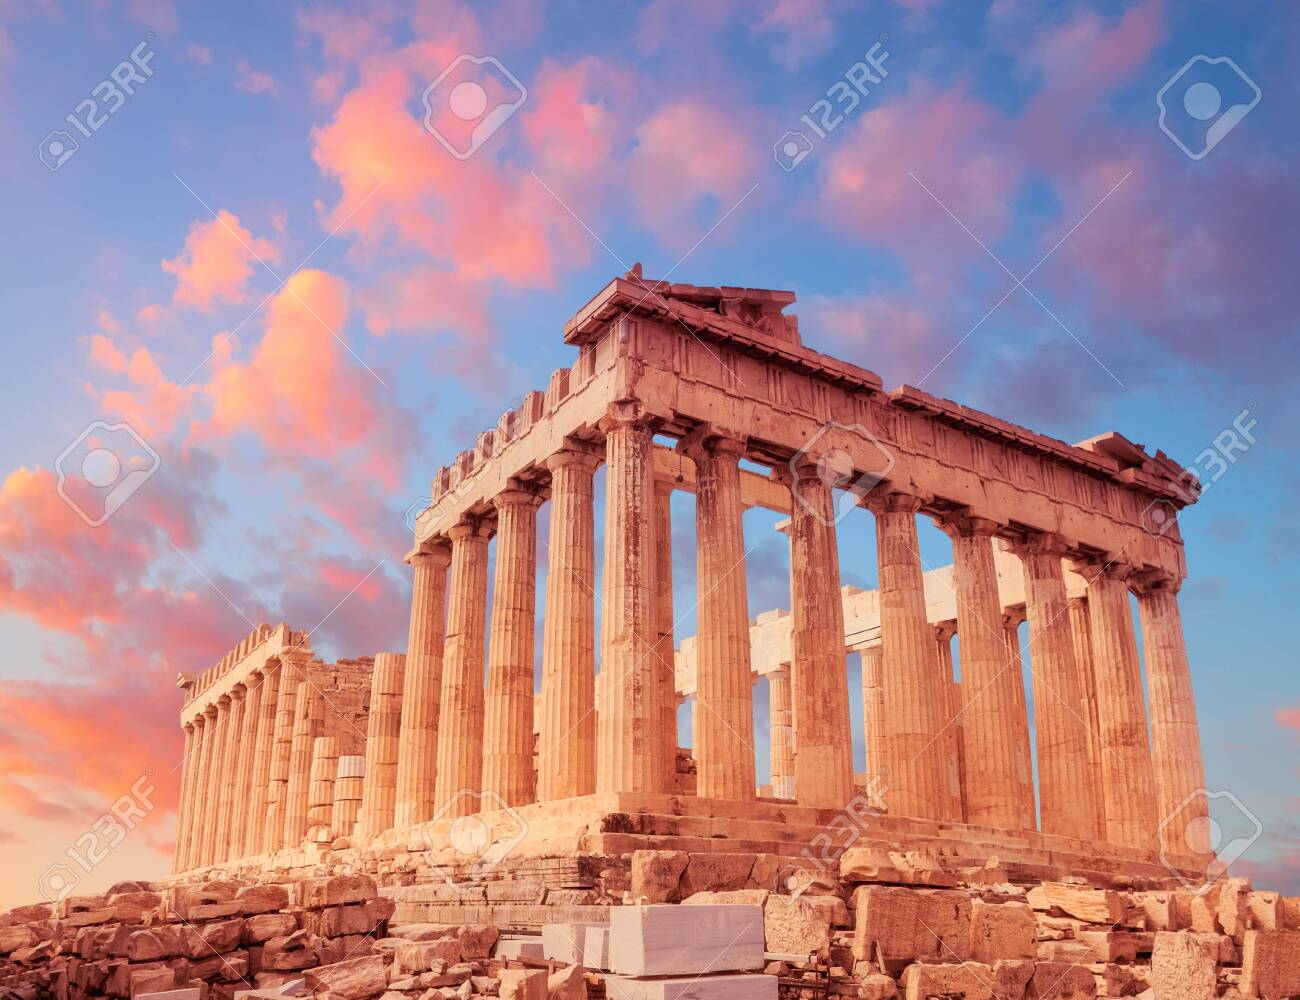 Parthenon temple on a sunset with pink and purple clouds. Acropolis in Athens, Greece - 131099812